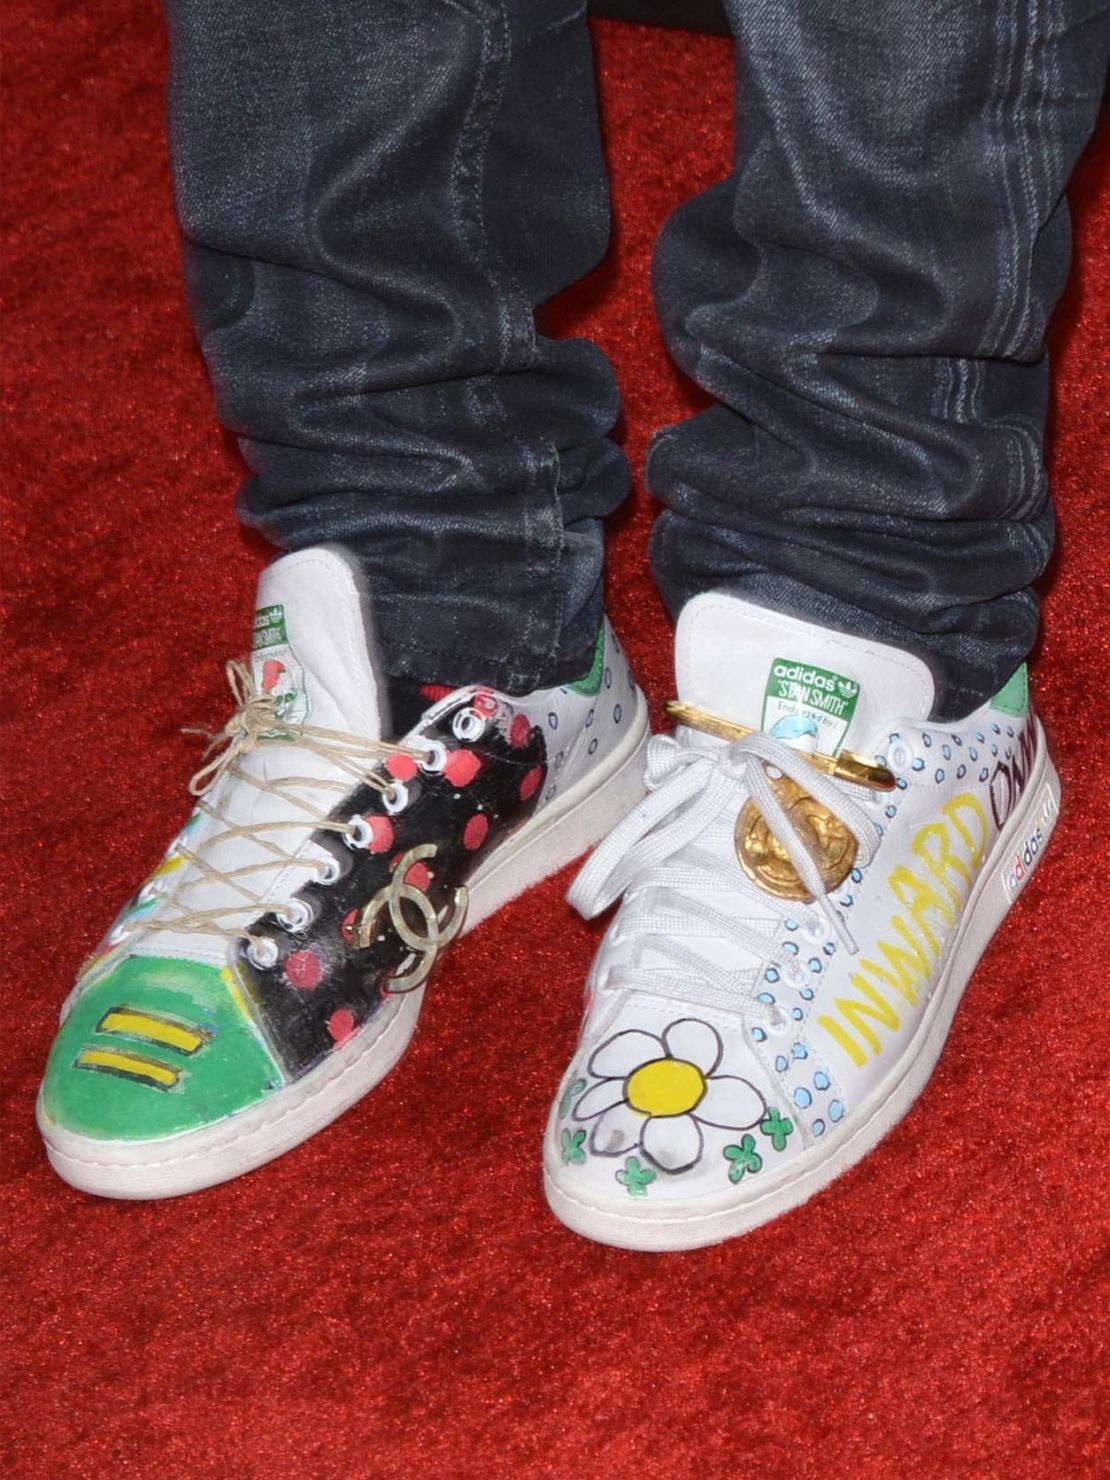 Limited edition Stan Smith shoes customised by Pharrell